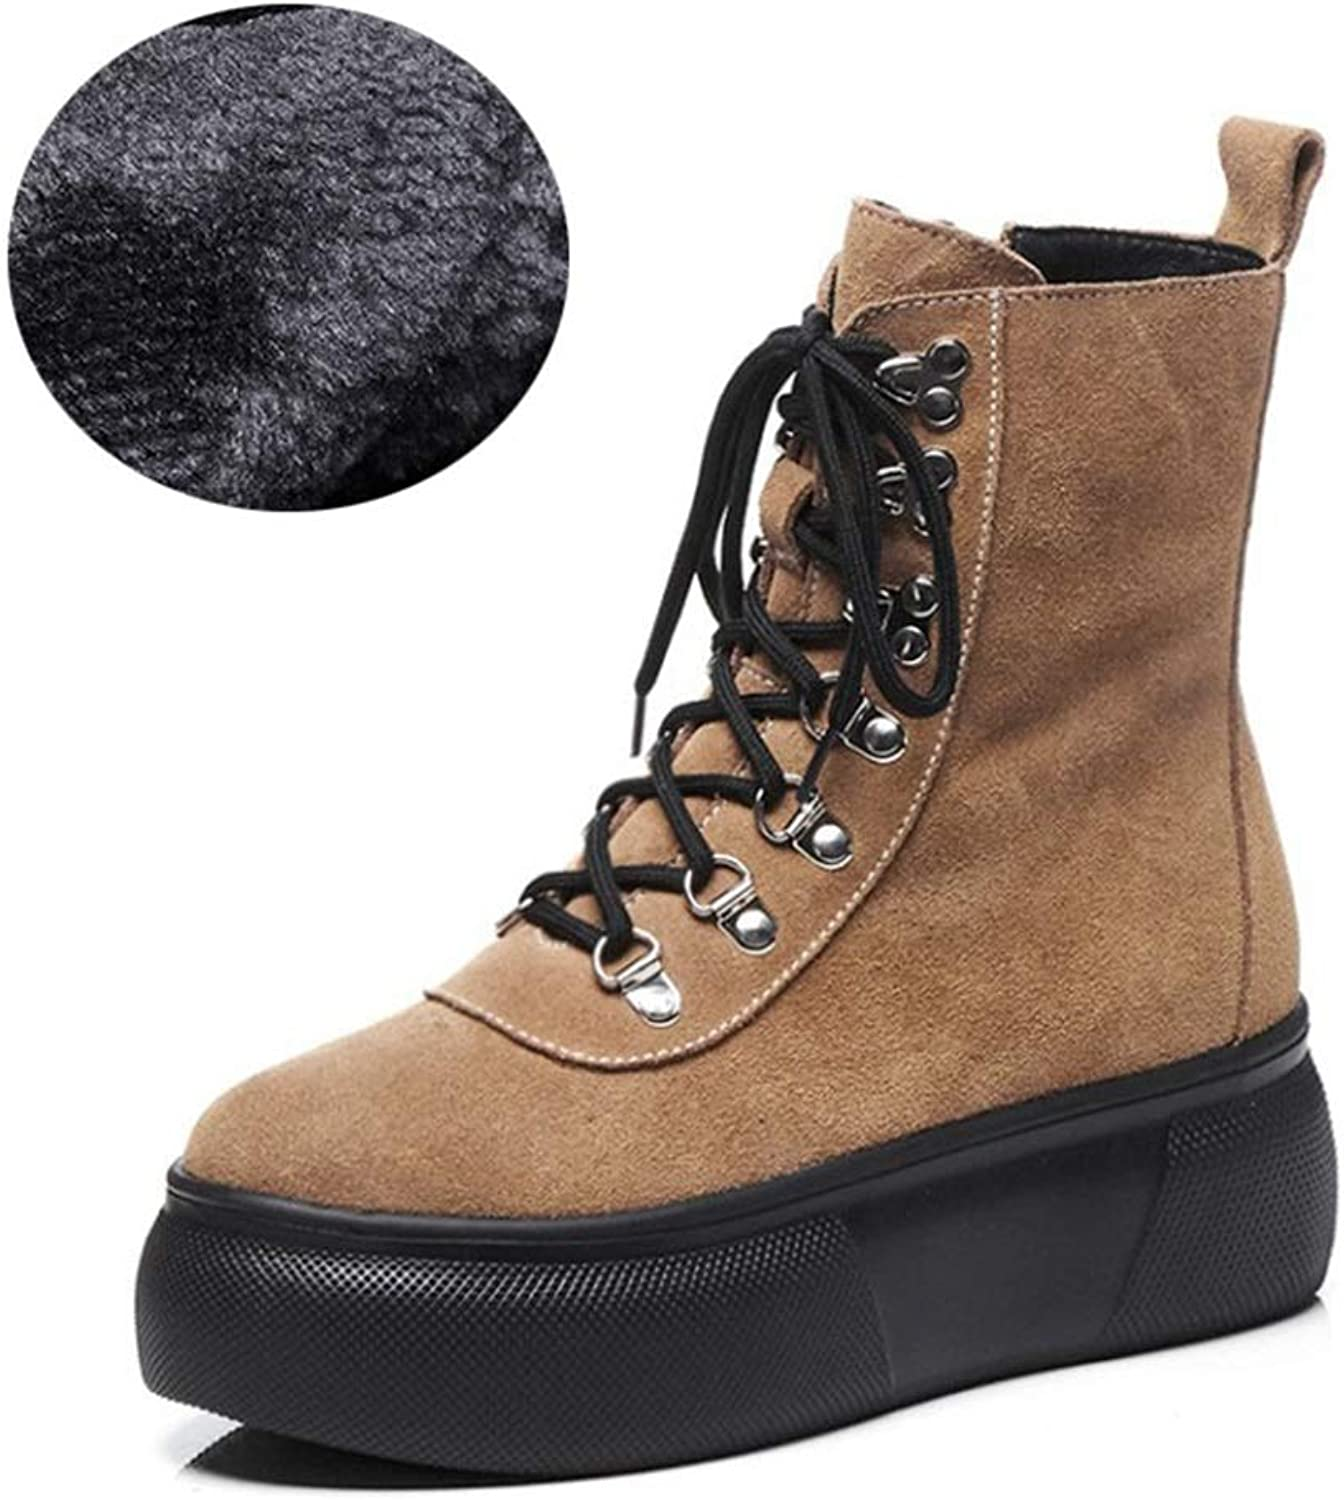 Women's Boots Suede Winter New Lady's Ankle Boots England Platform shoes Round Head Lace Up Martin Boots Black Green Brown (color   B, Size   36)